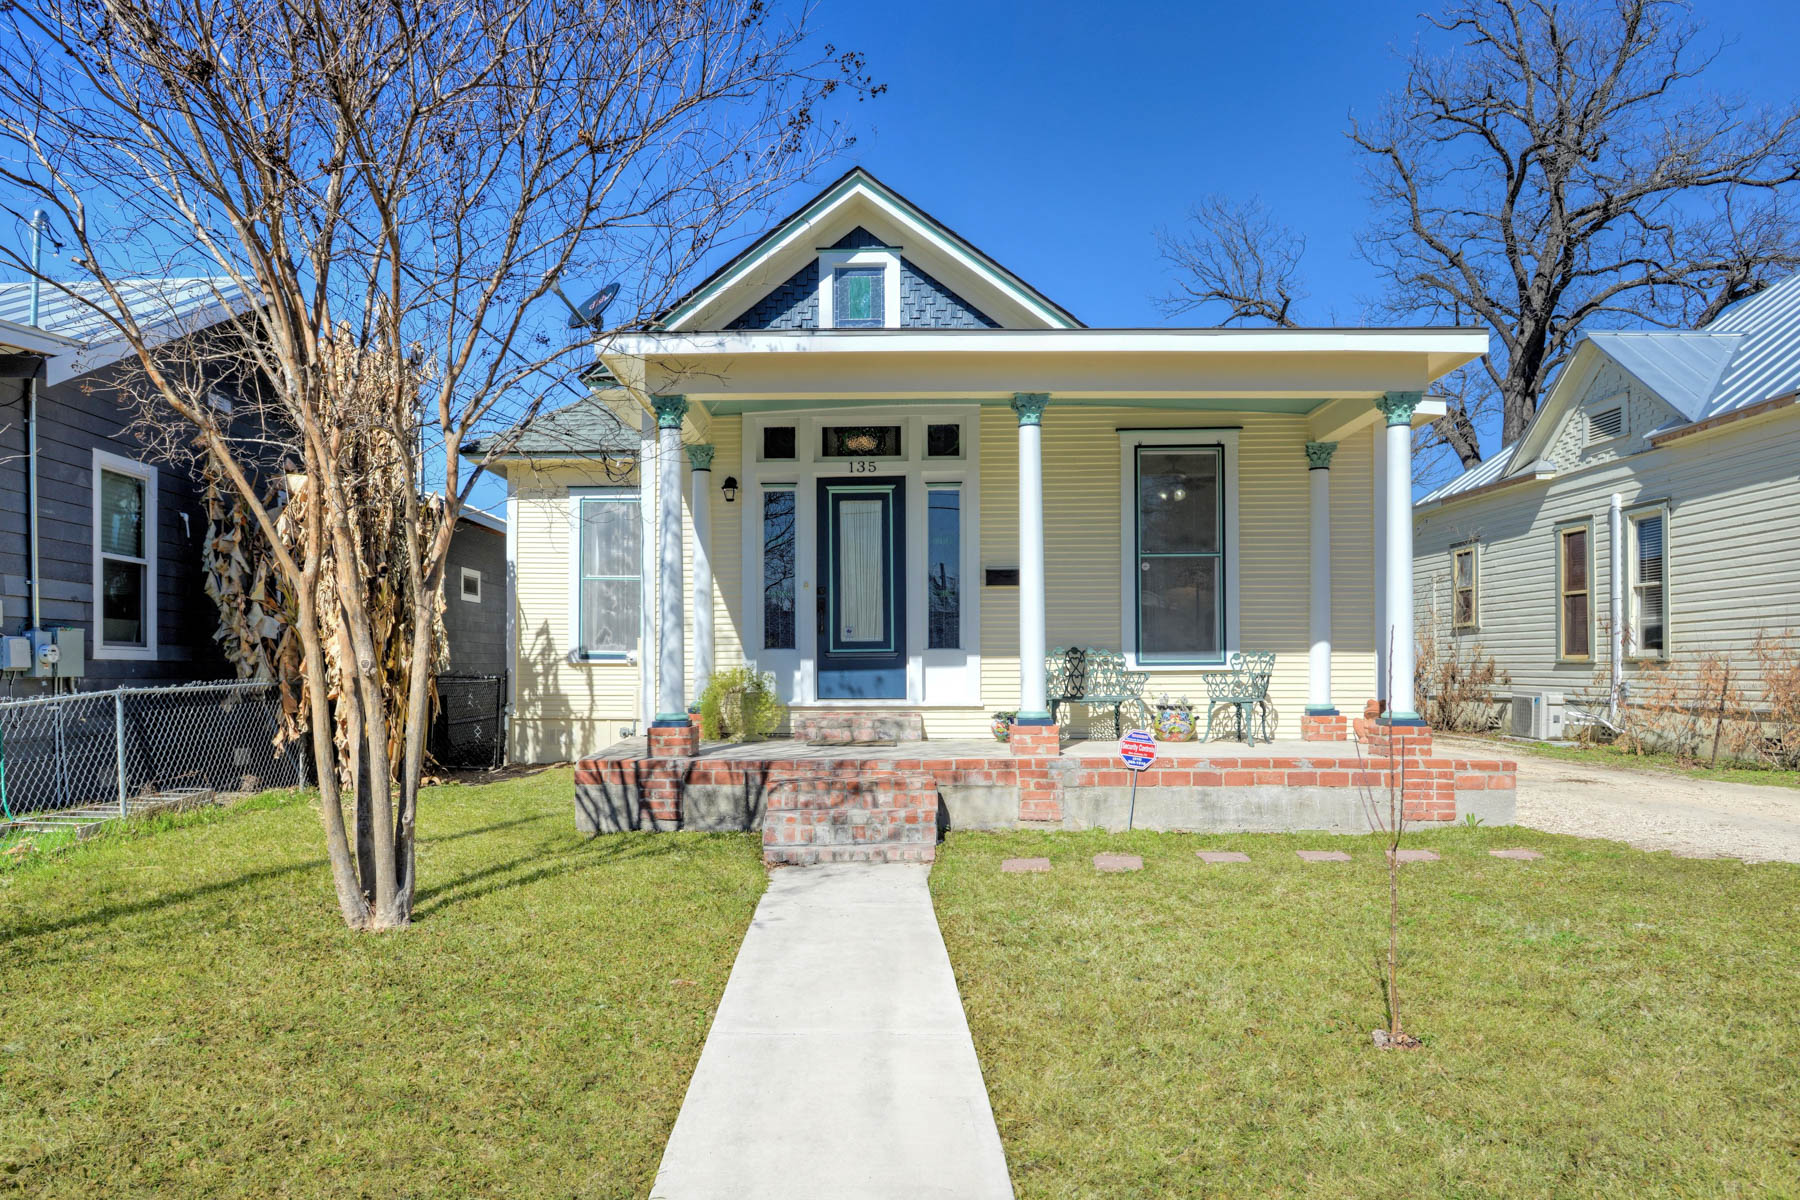 Single Family Home for Rent at 135 Vitra Place 135 Vitra Place San Antonio, Texas 78210 United States